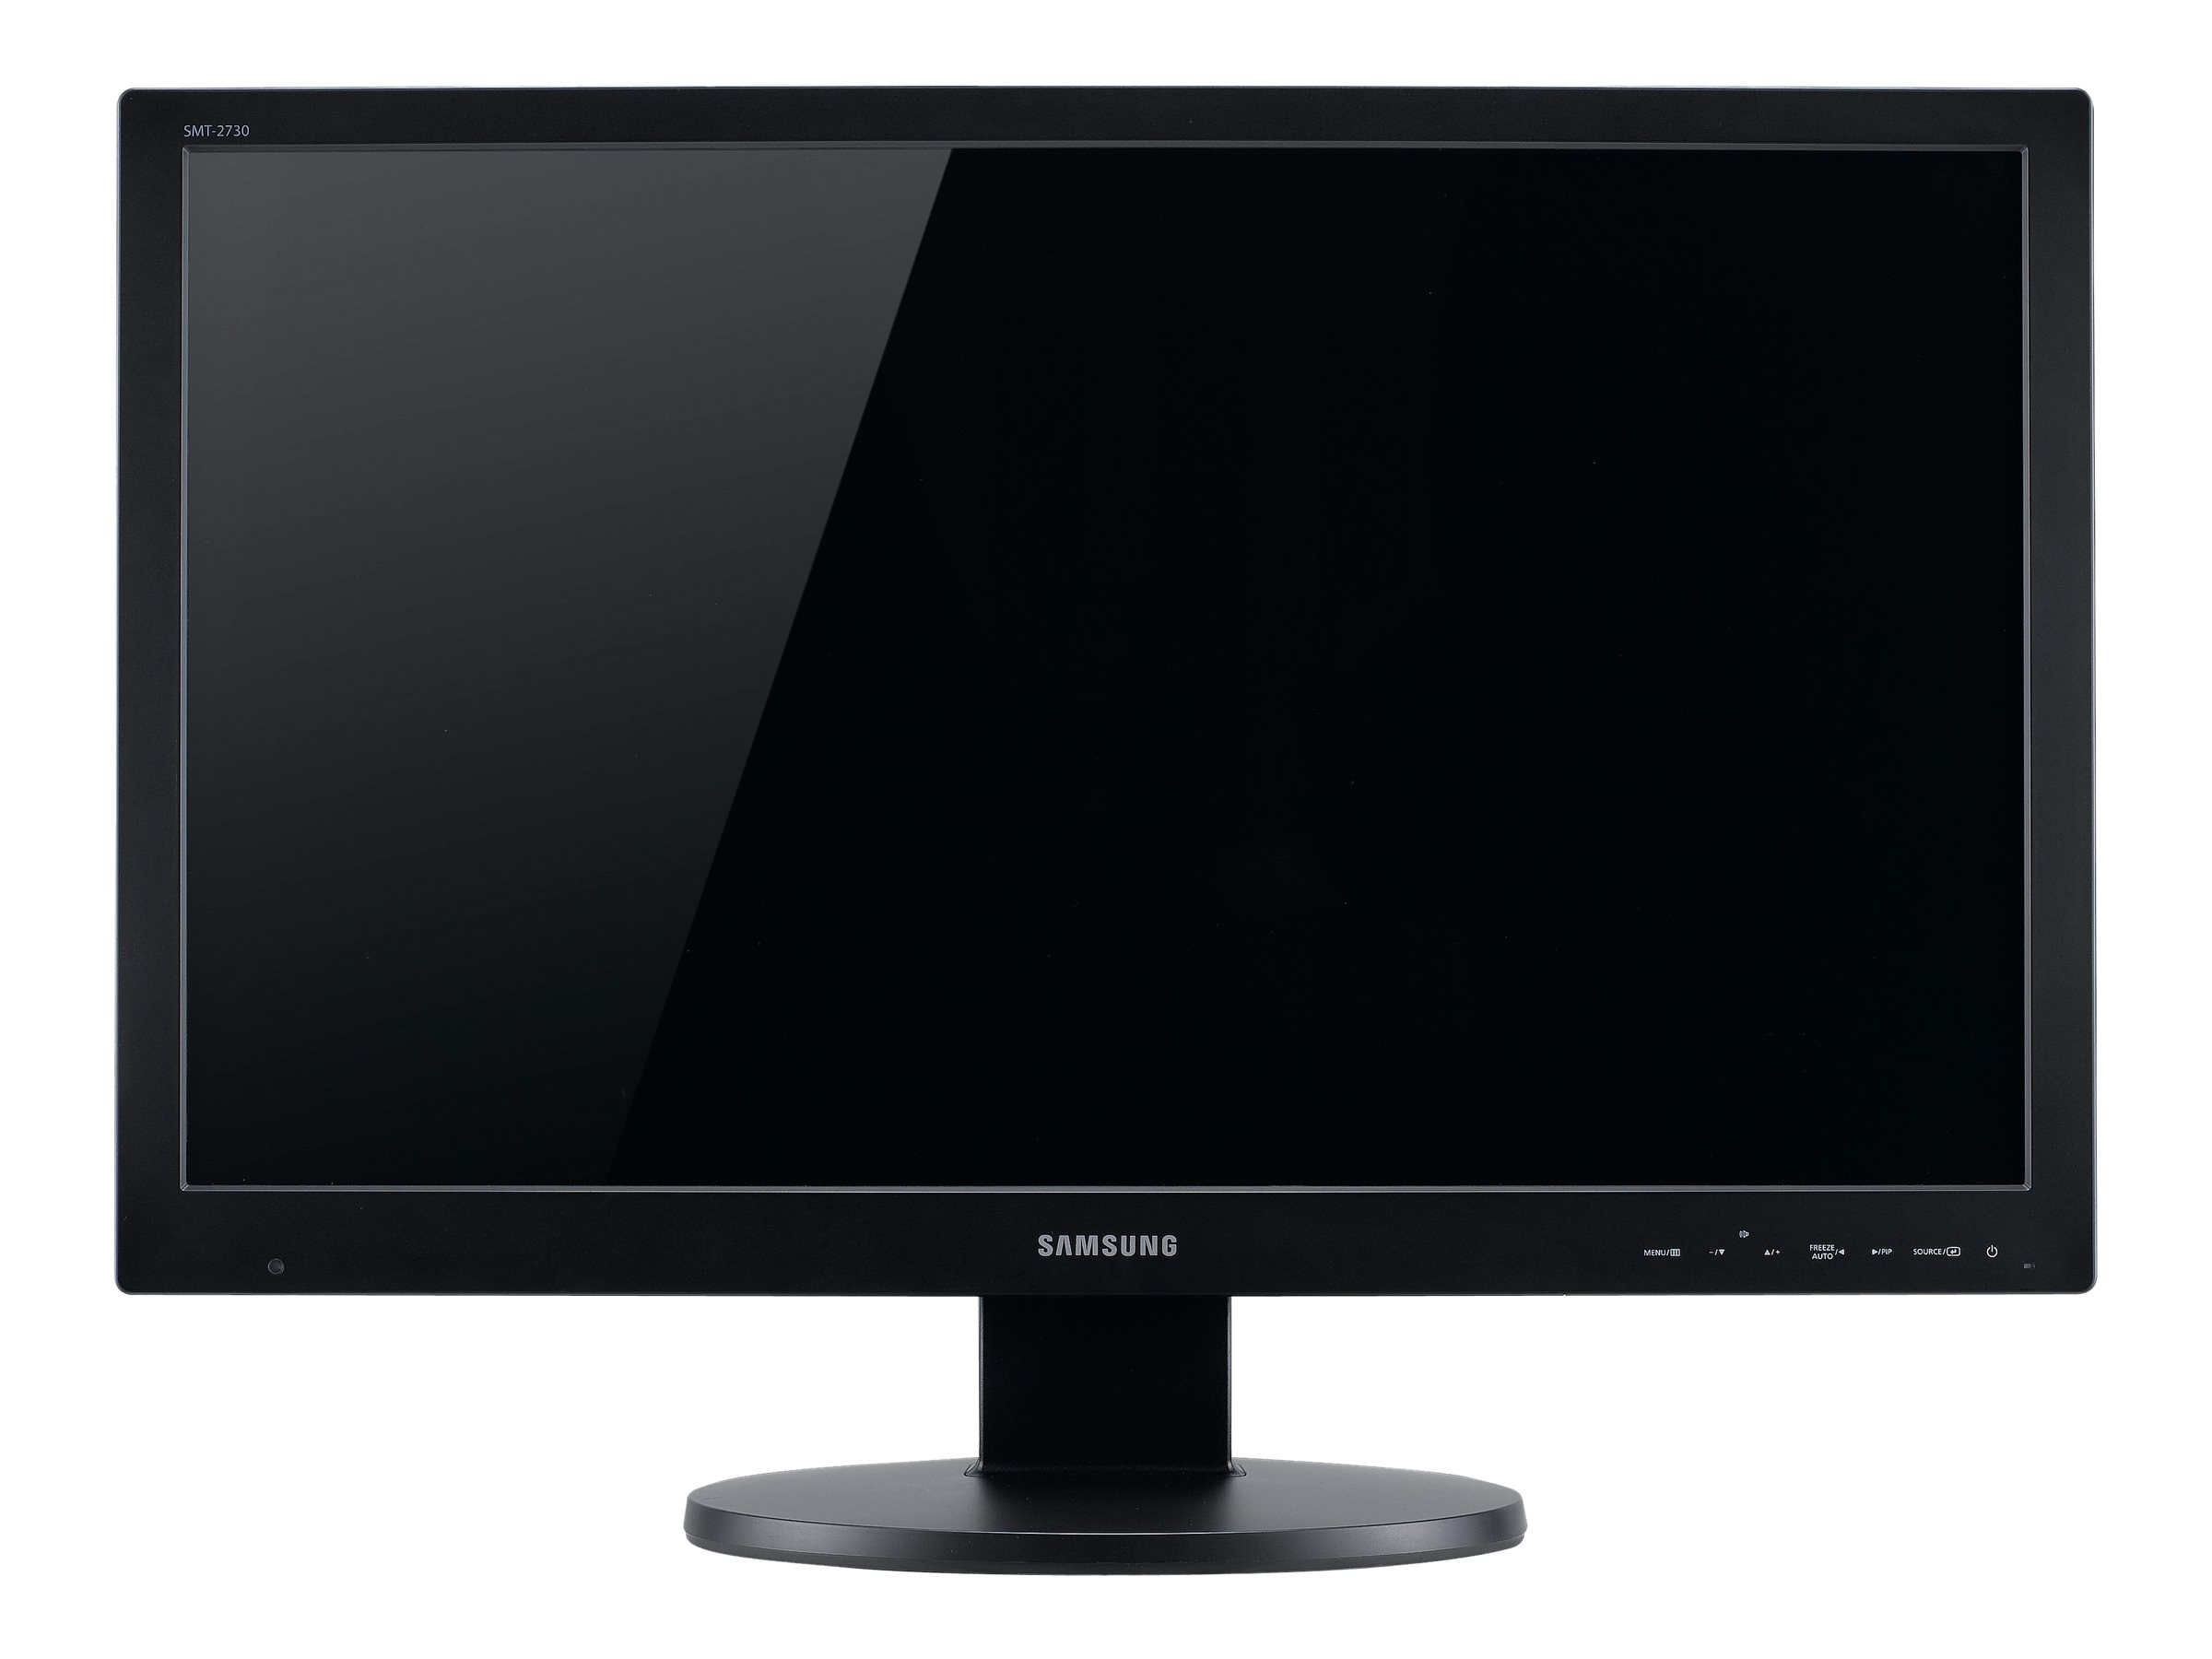 Samsung 27 SMT-2731 Full HD LED Monitor, Black